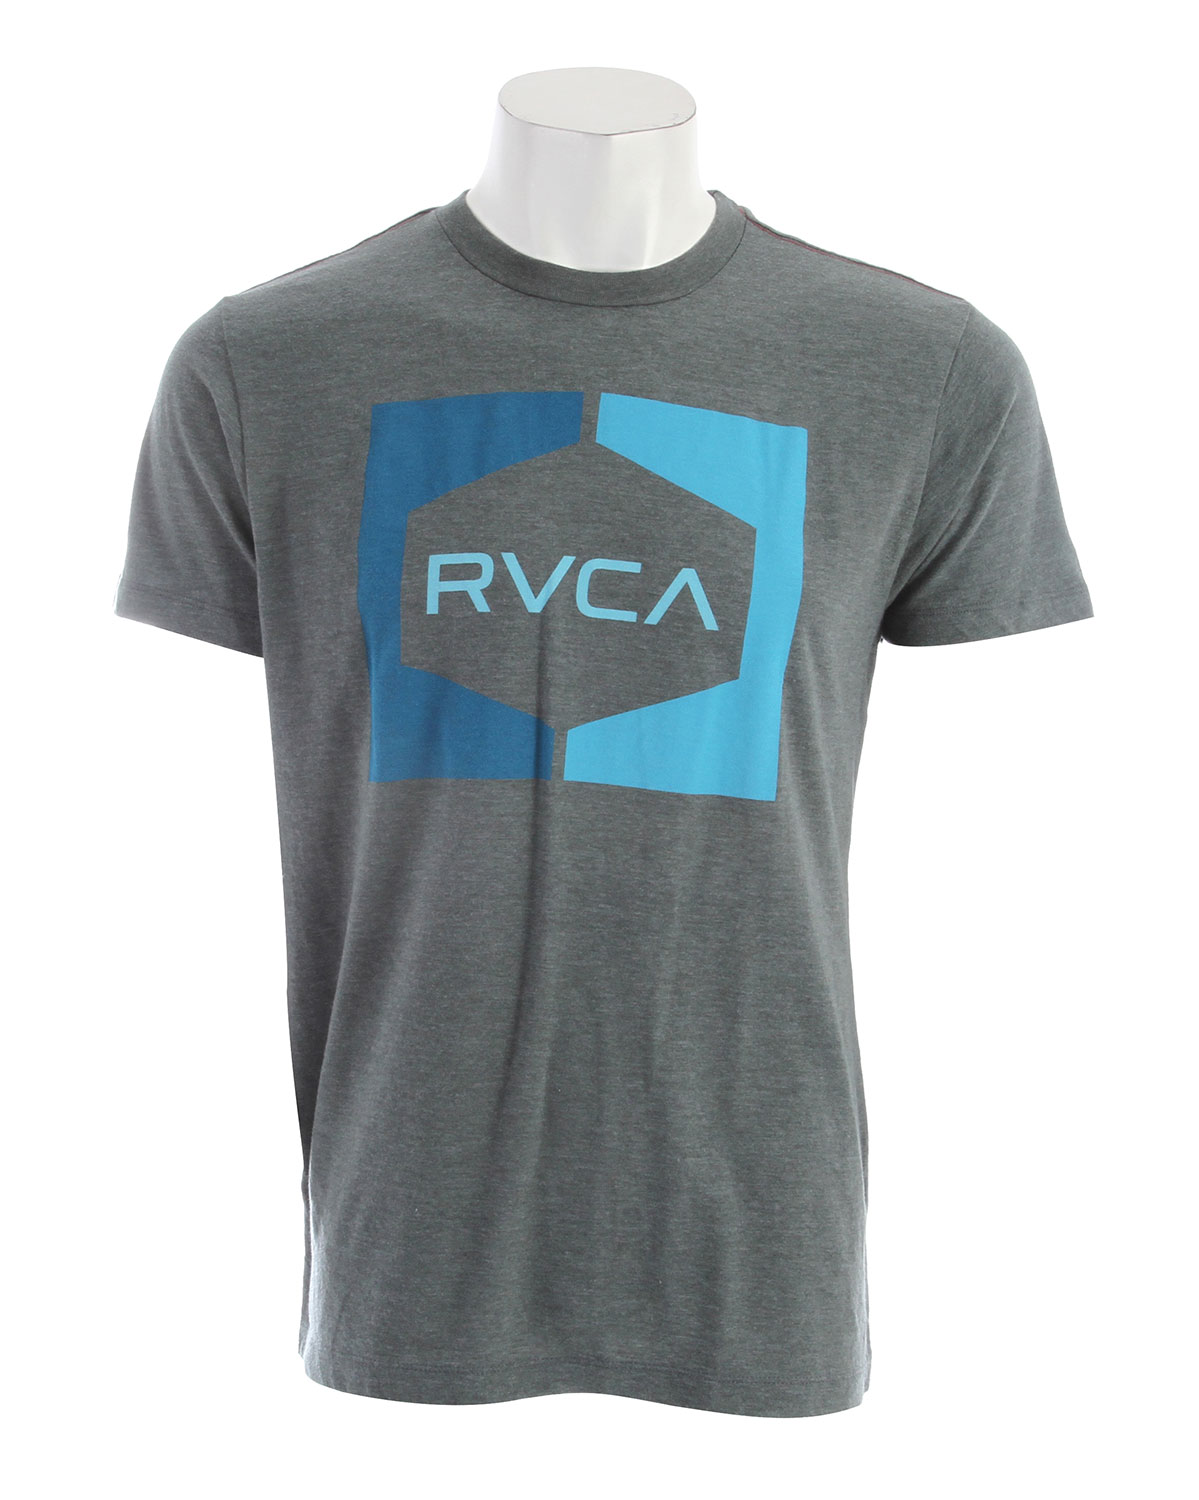 Key Features of the RVCA Invert Hex Vintage Dye T-Shirt: 55% Polyester/45% Cotton Vintage Dye Slim Fit tee with front print and screened inside neck - $27.00